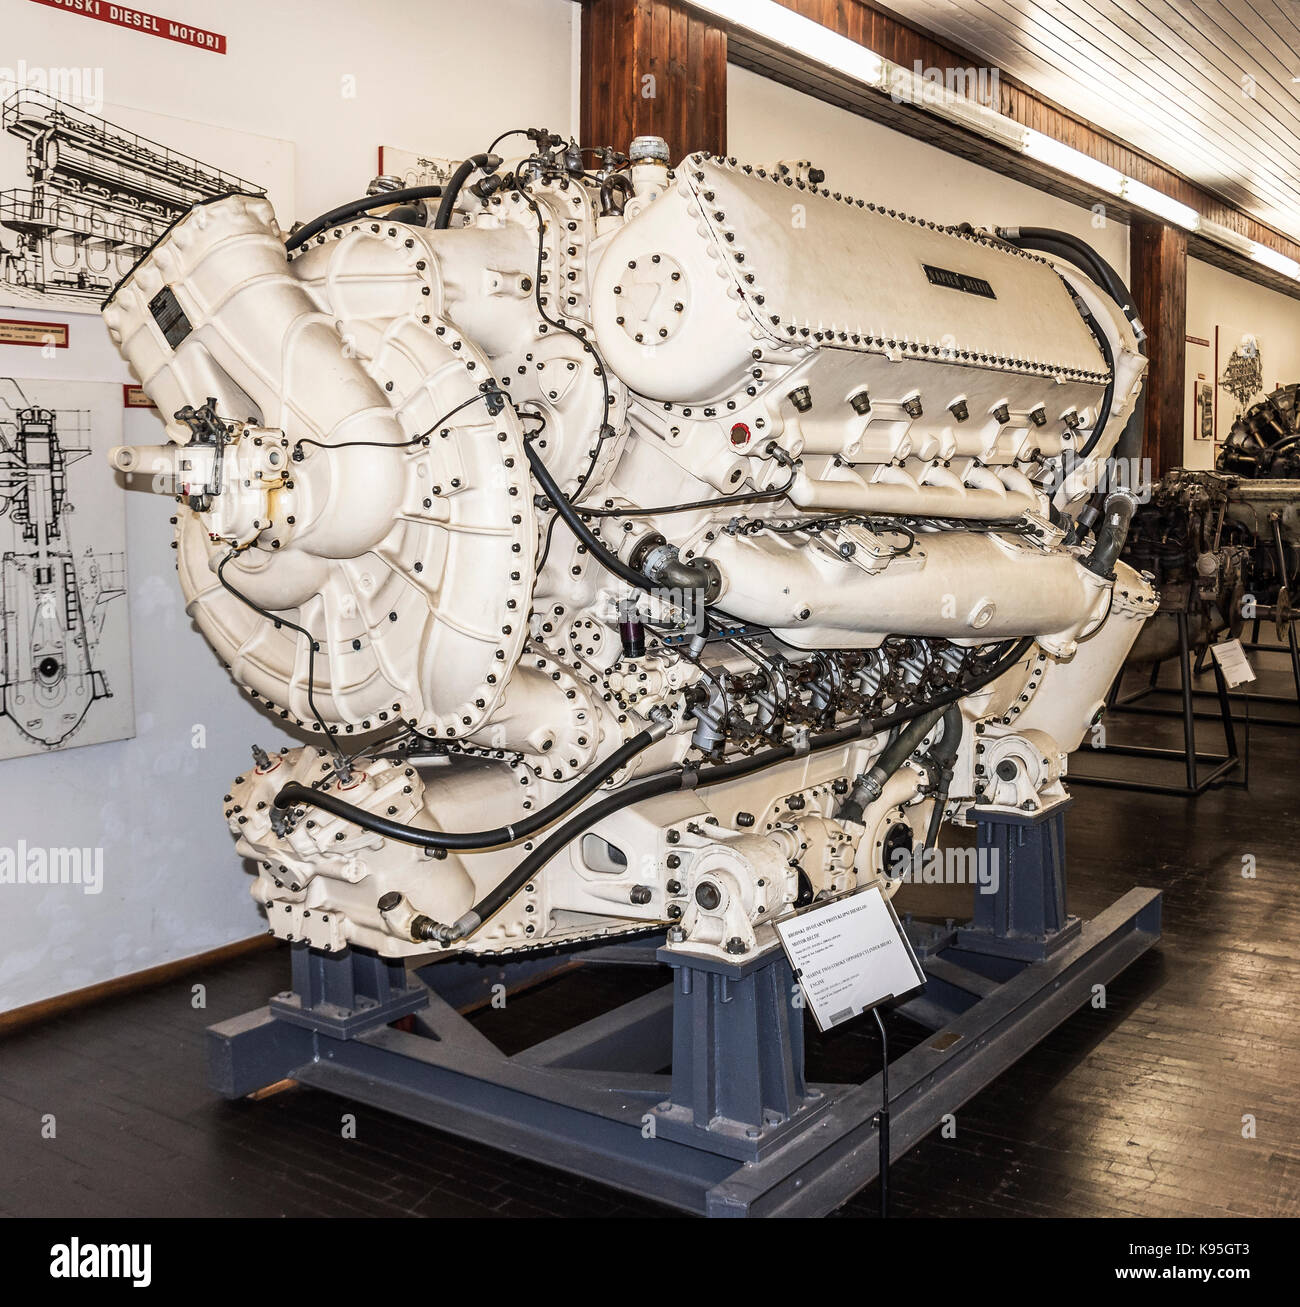 The engine of the old plane. - Stock Image